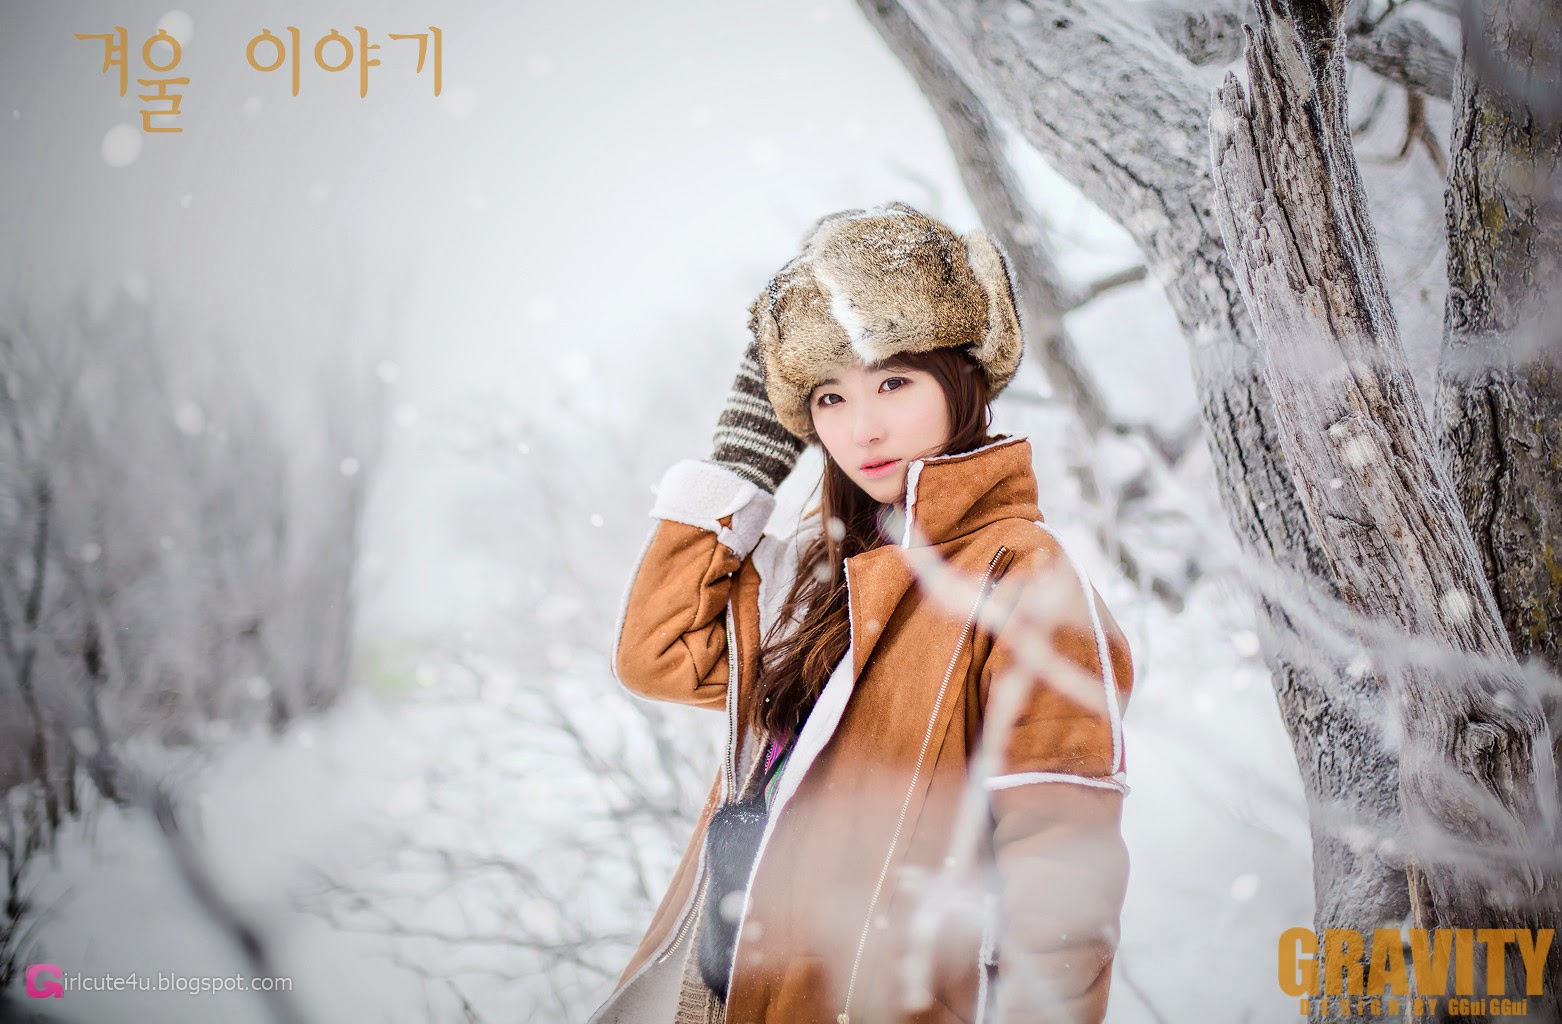 3 Im Ji Woo - Snow Blind - very cute asian girl-girlcute4u.blogspot.com